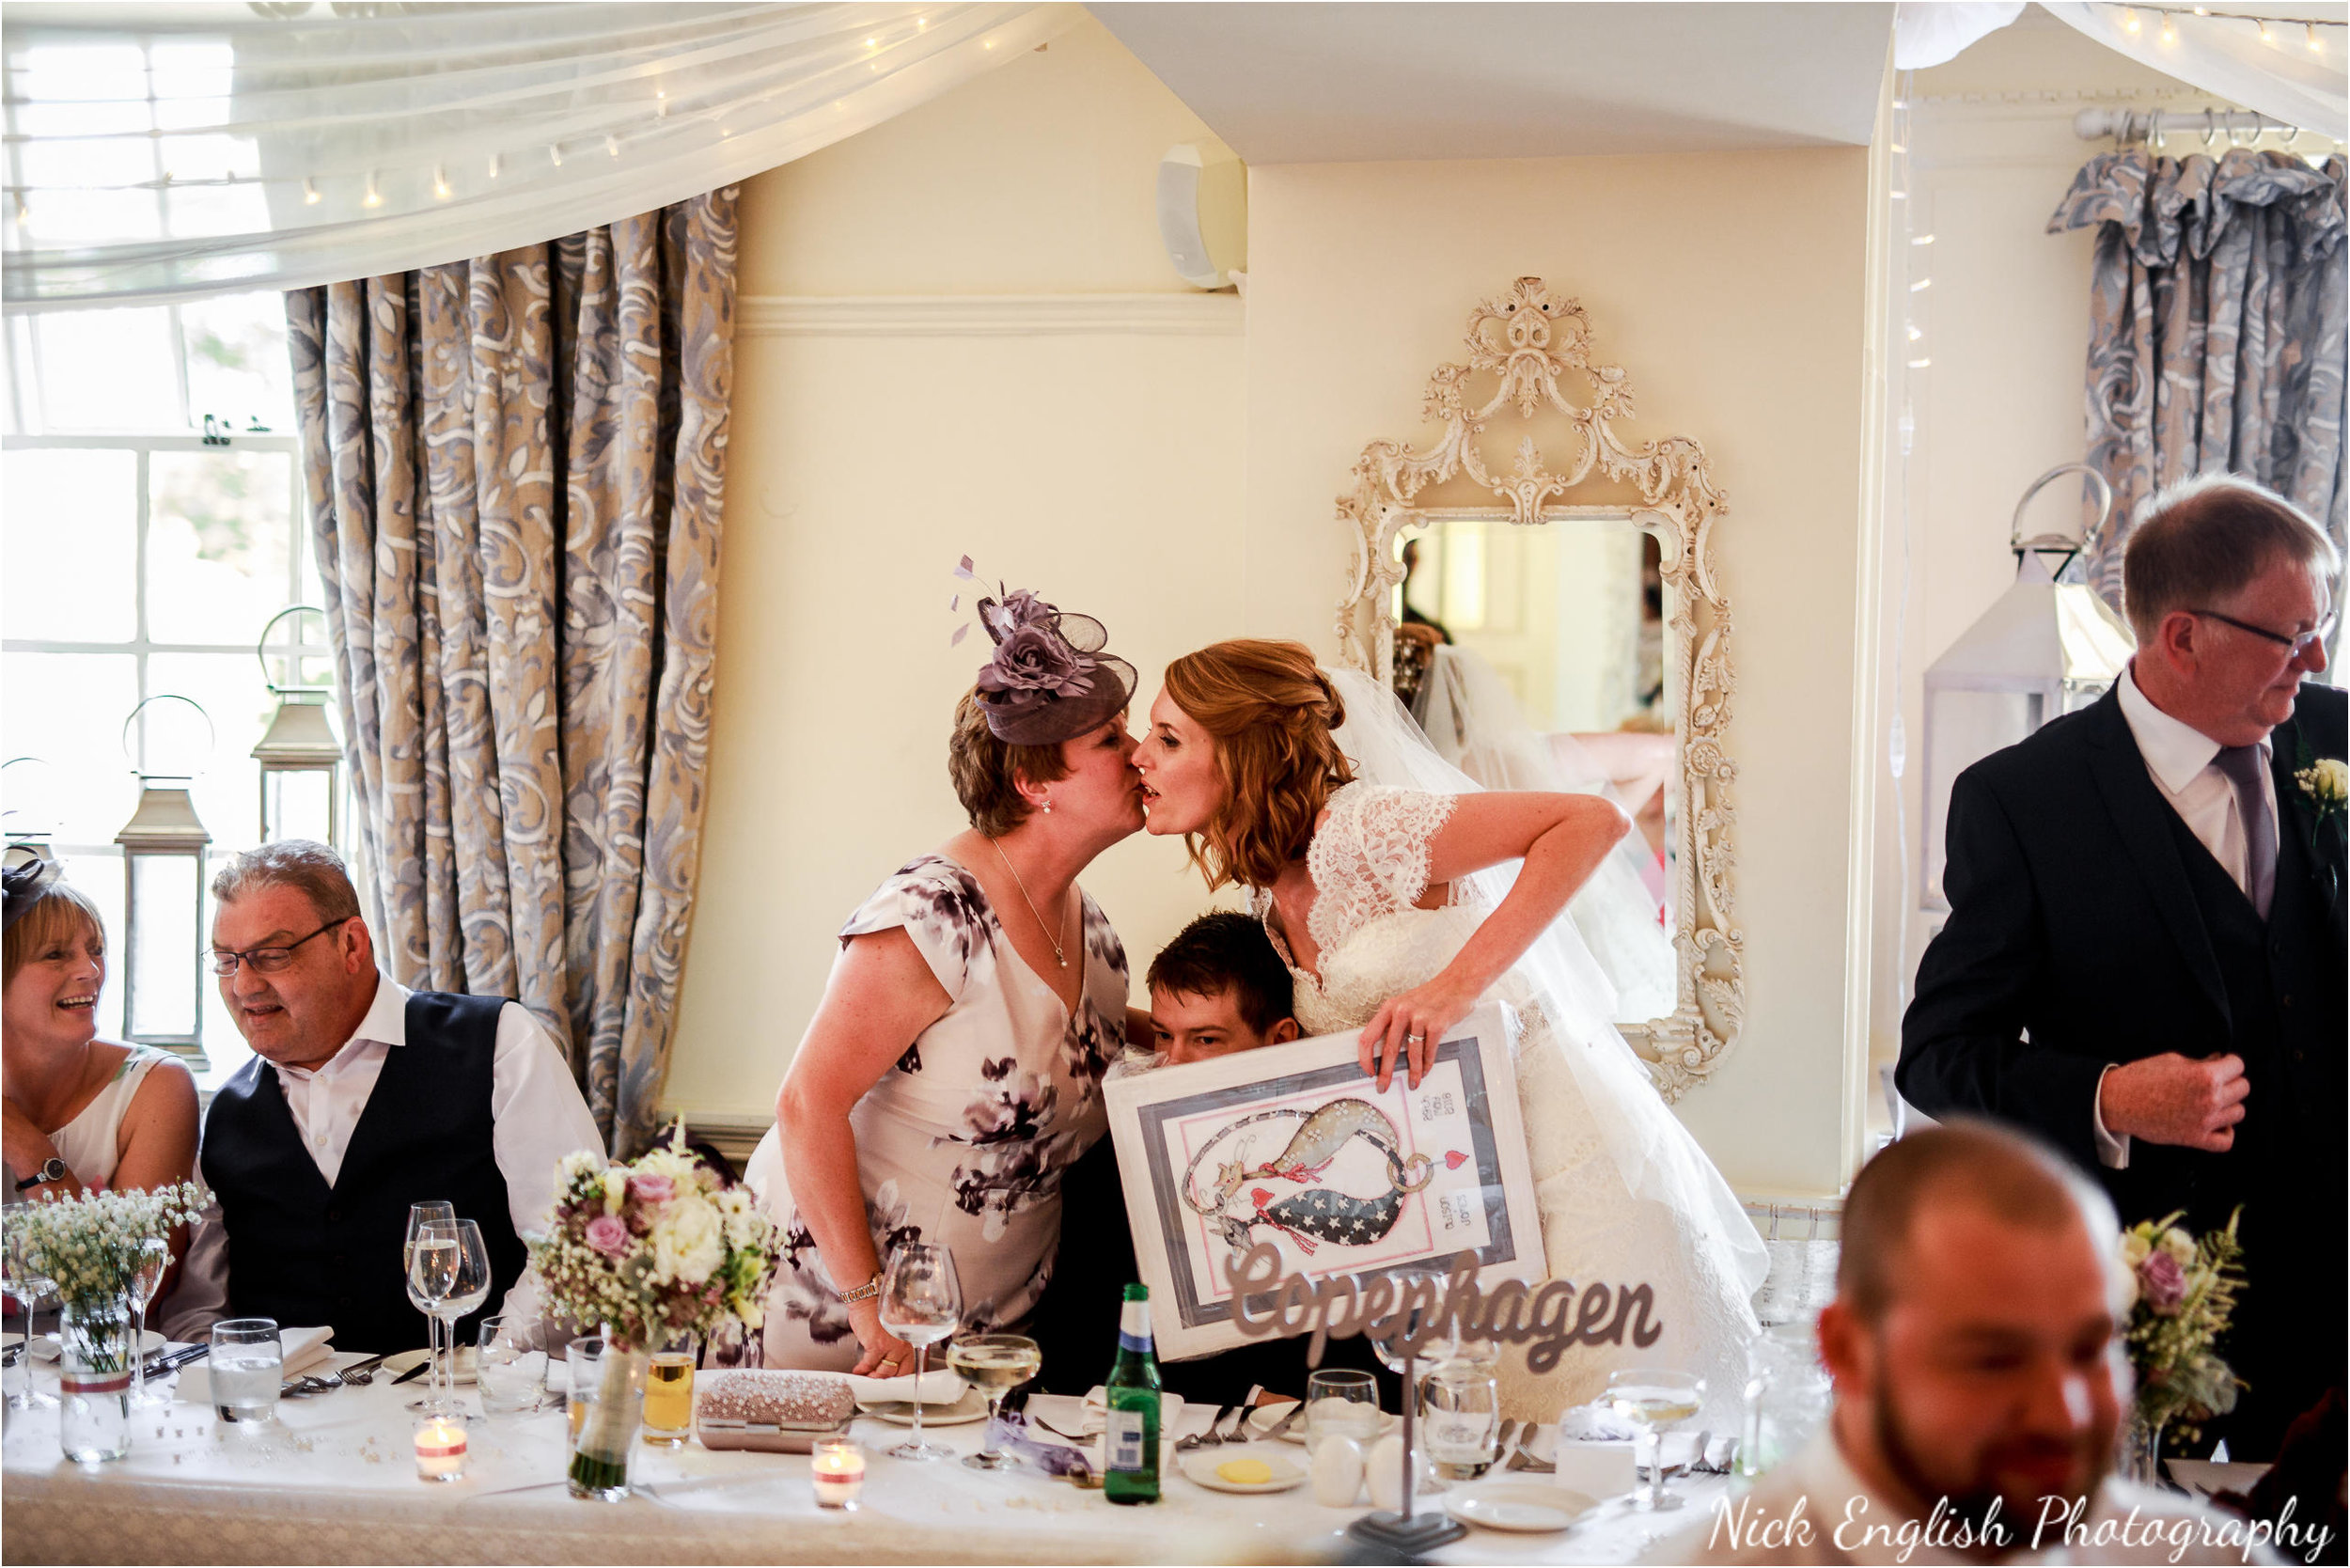 Alison James Wedding Photographs at Eaves Hall West Bradford 172jpg.jpeg